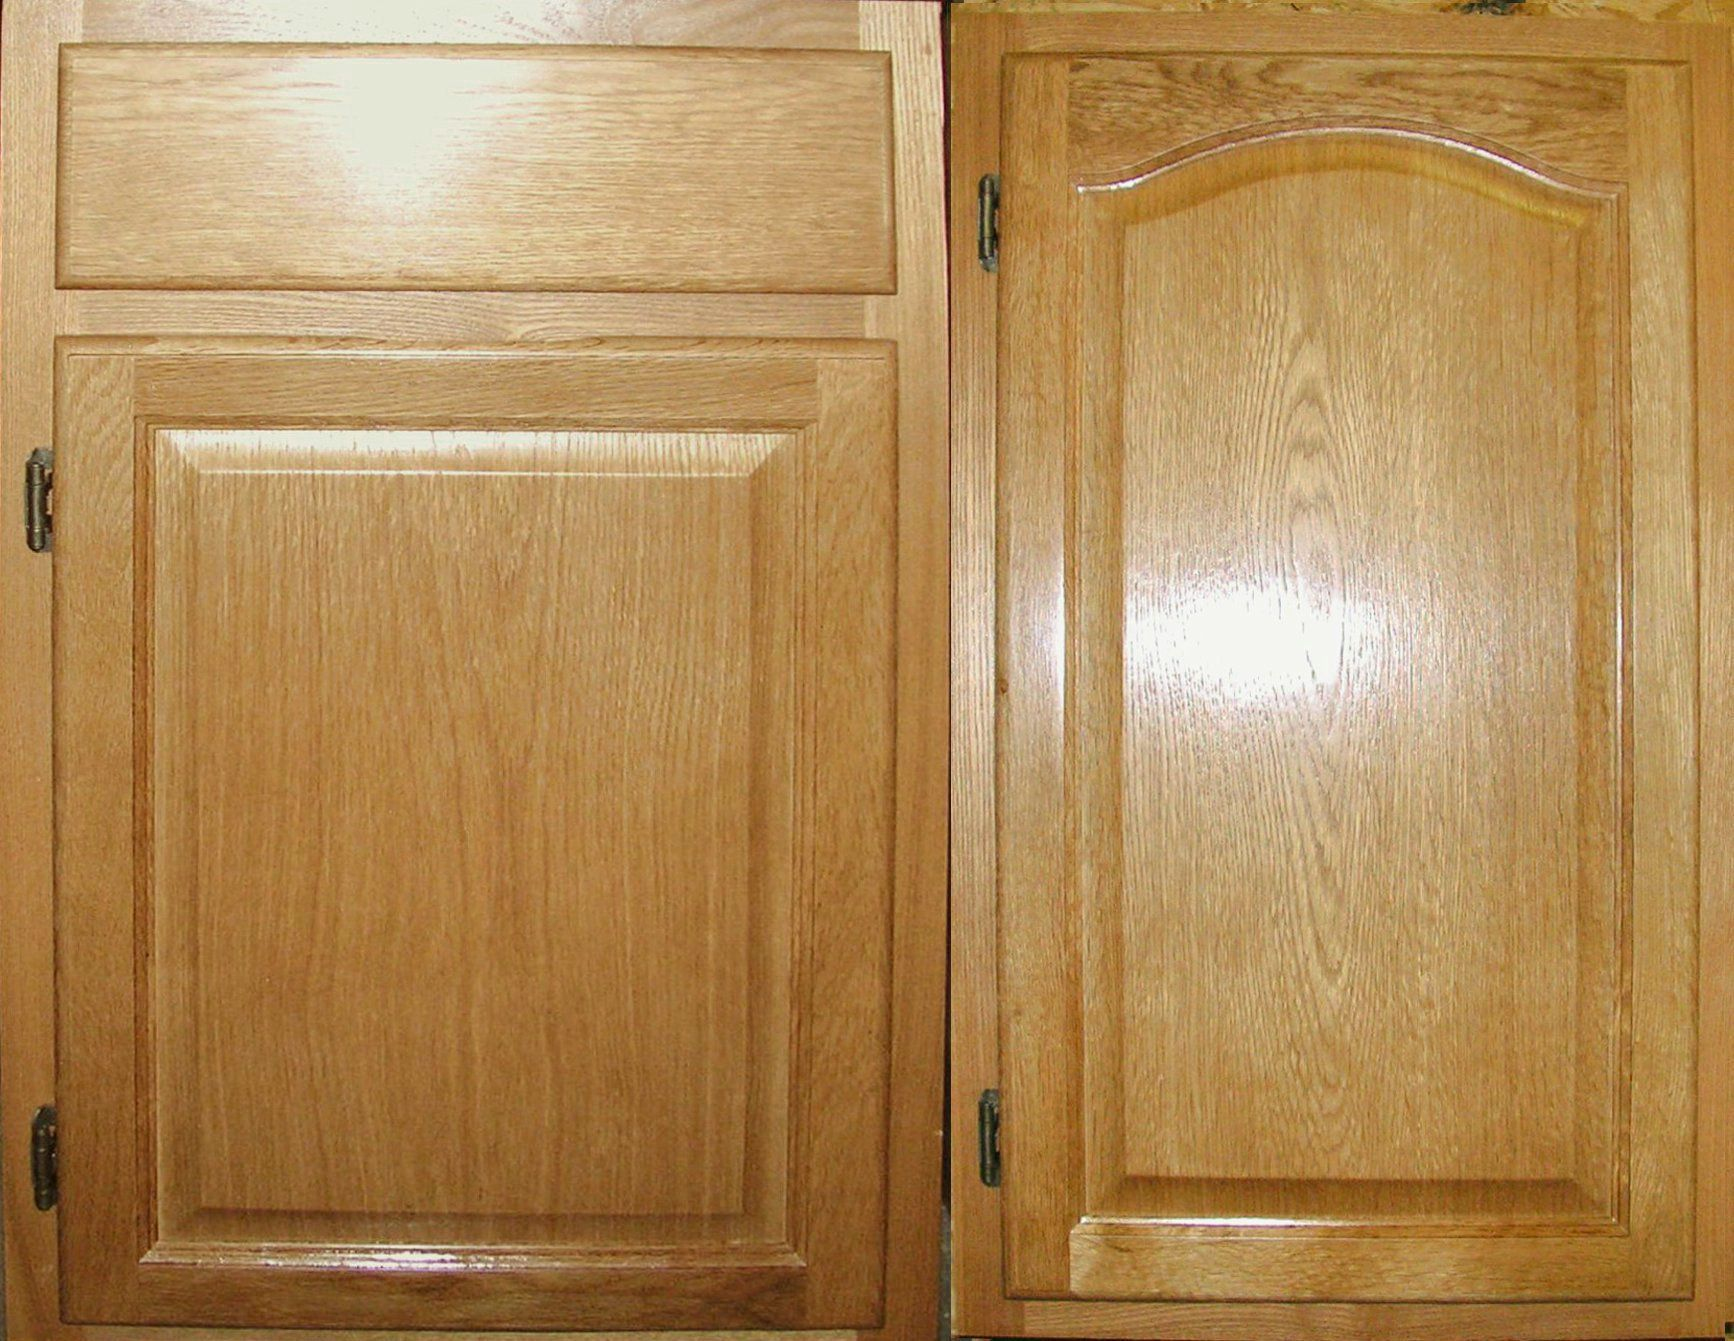 All Wood Raised Panel Arch Uppers Oak Unfinished Kitchen Cabinets Unfinished Cabinet Doors Cabinet Doors